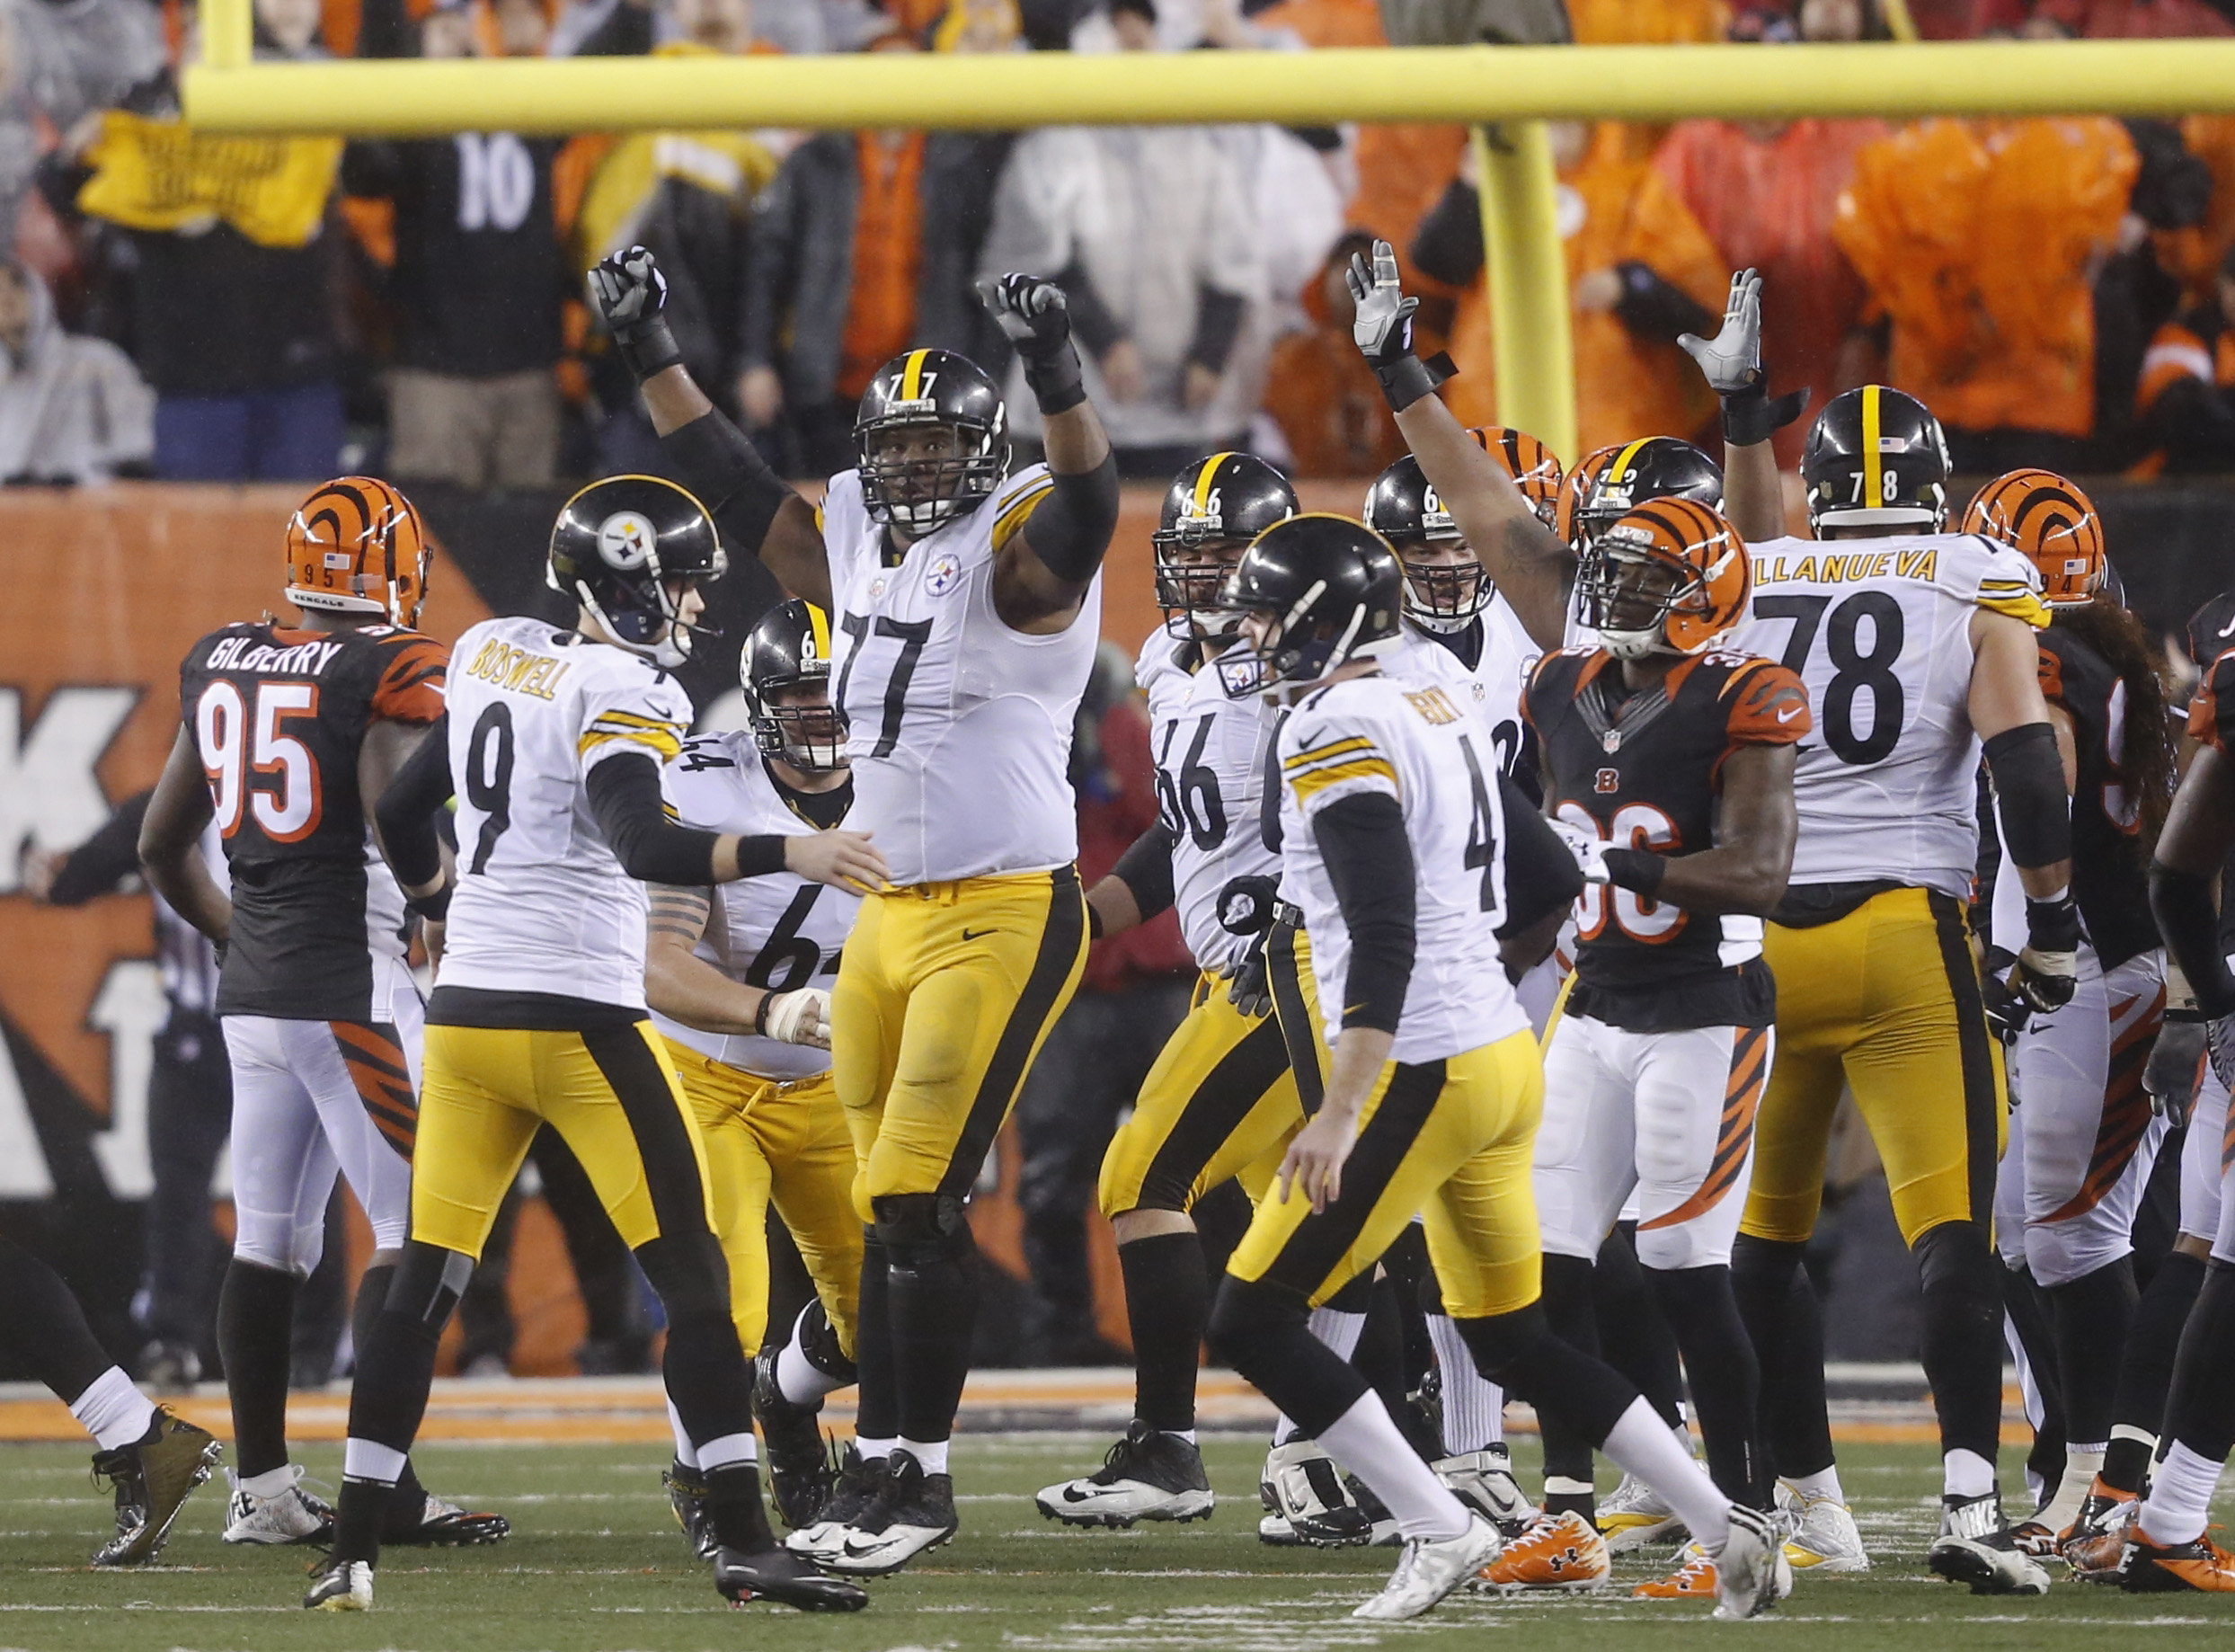 Pittsburgh Steelers' Chris Boswell (9) celebrates a 35-yard game inning field goal during the second half of an NFL wild-card playoff football game against the Cincinnati Bengals, Sunday, Jan. 10, 2016, in Cincinnati. Pittsburgh won 18-16. (AP Photo/Frank